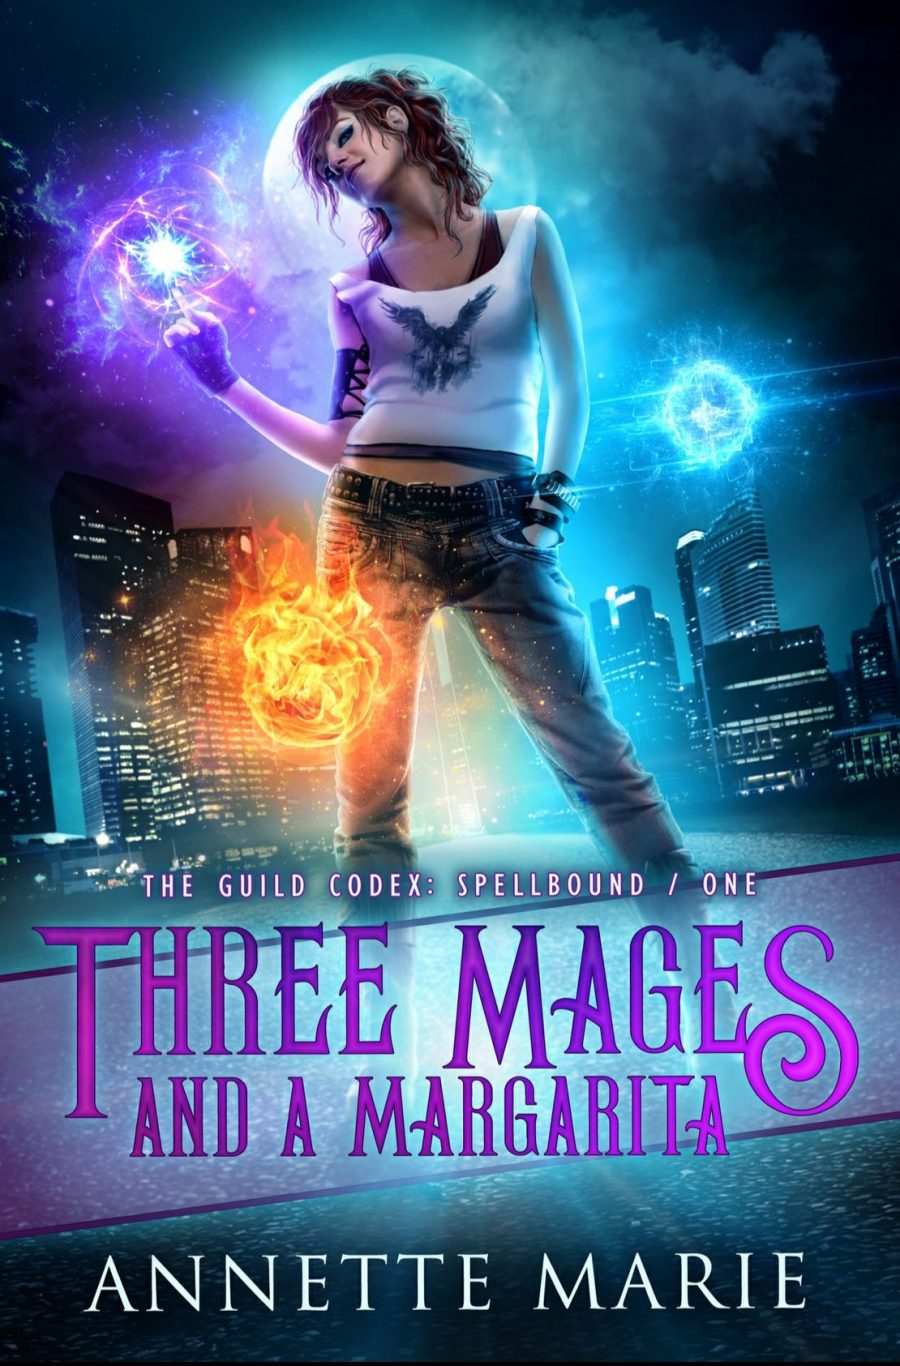 Three Mages and a Margarita by Annette Marie – A Book Review